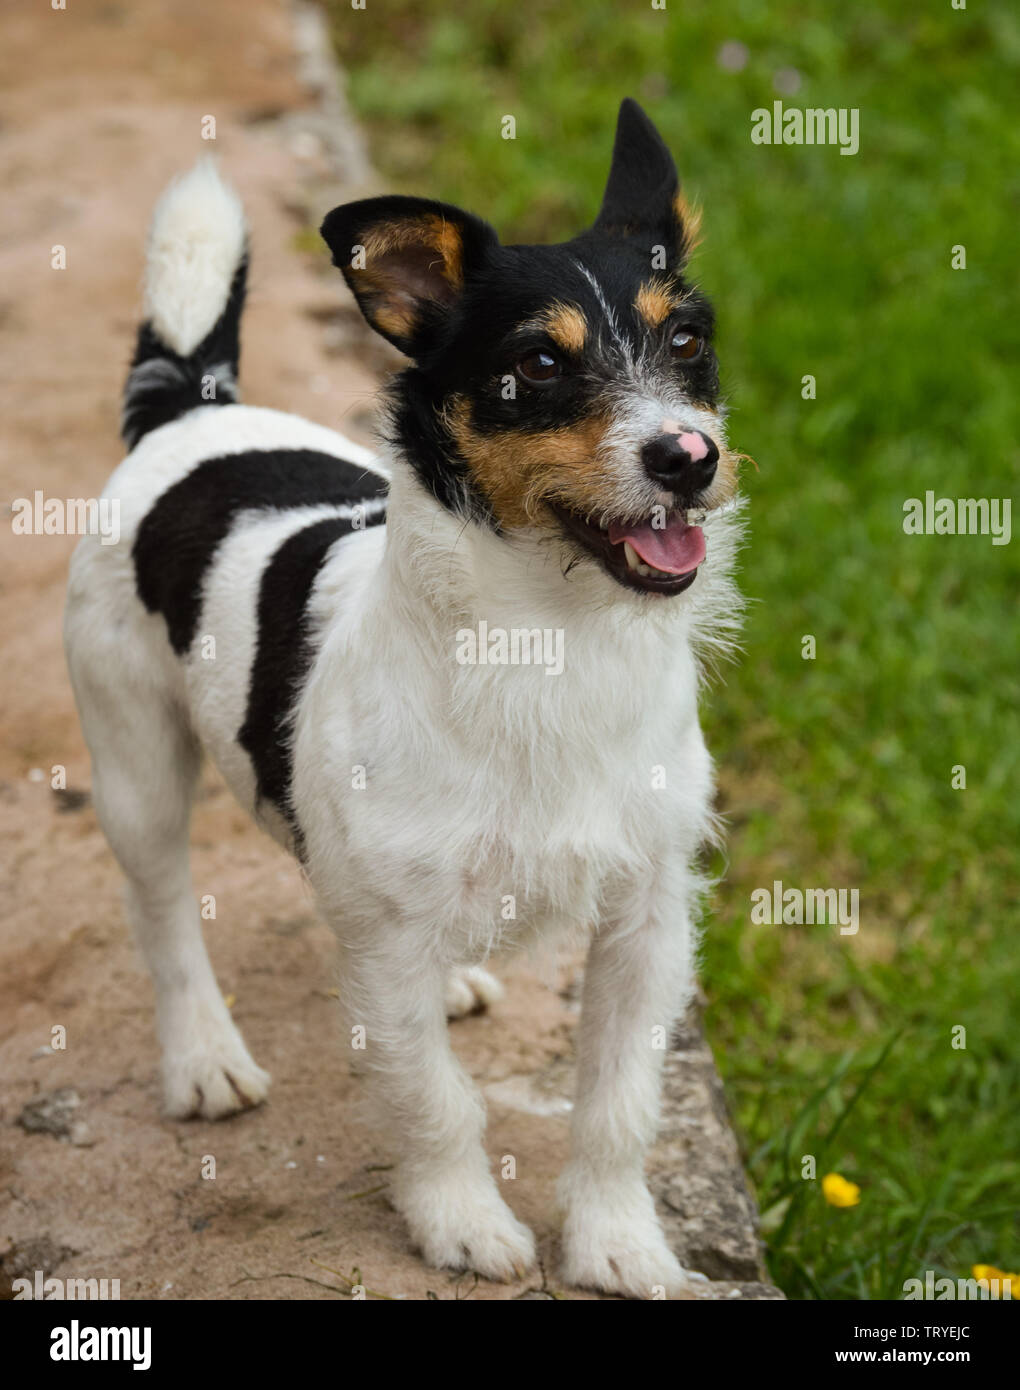 A naughty wire haired black white and brown Jack Russell Terrier dog standing on a wall and plotting mischief - Stock Image